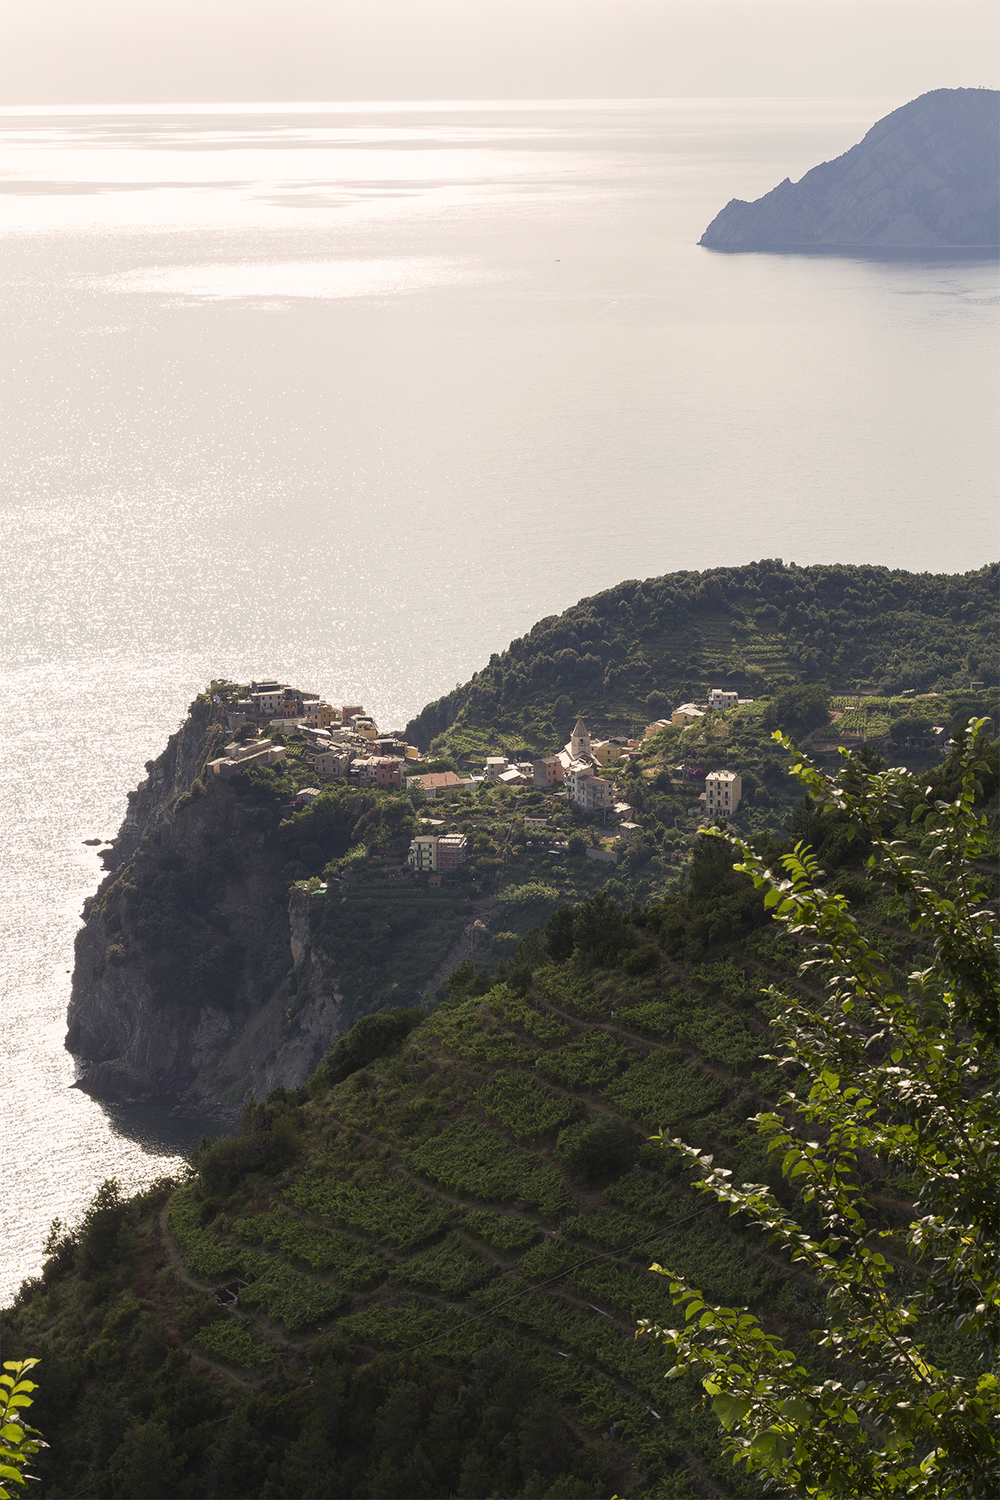 Looking down on Corniglia in the beautiful late afternoon sun.